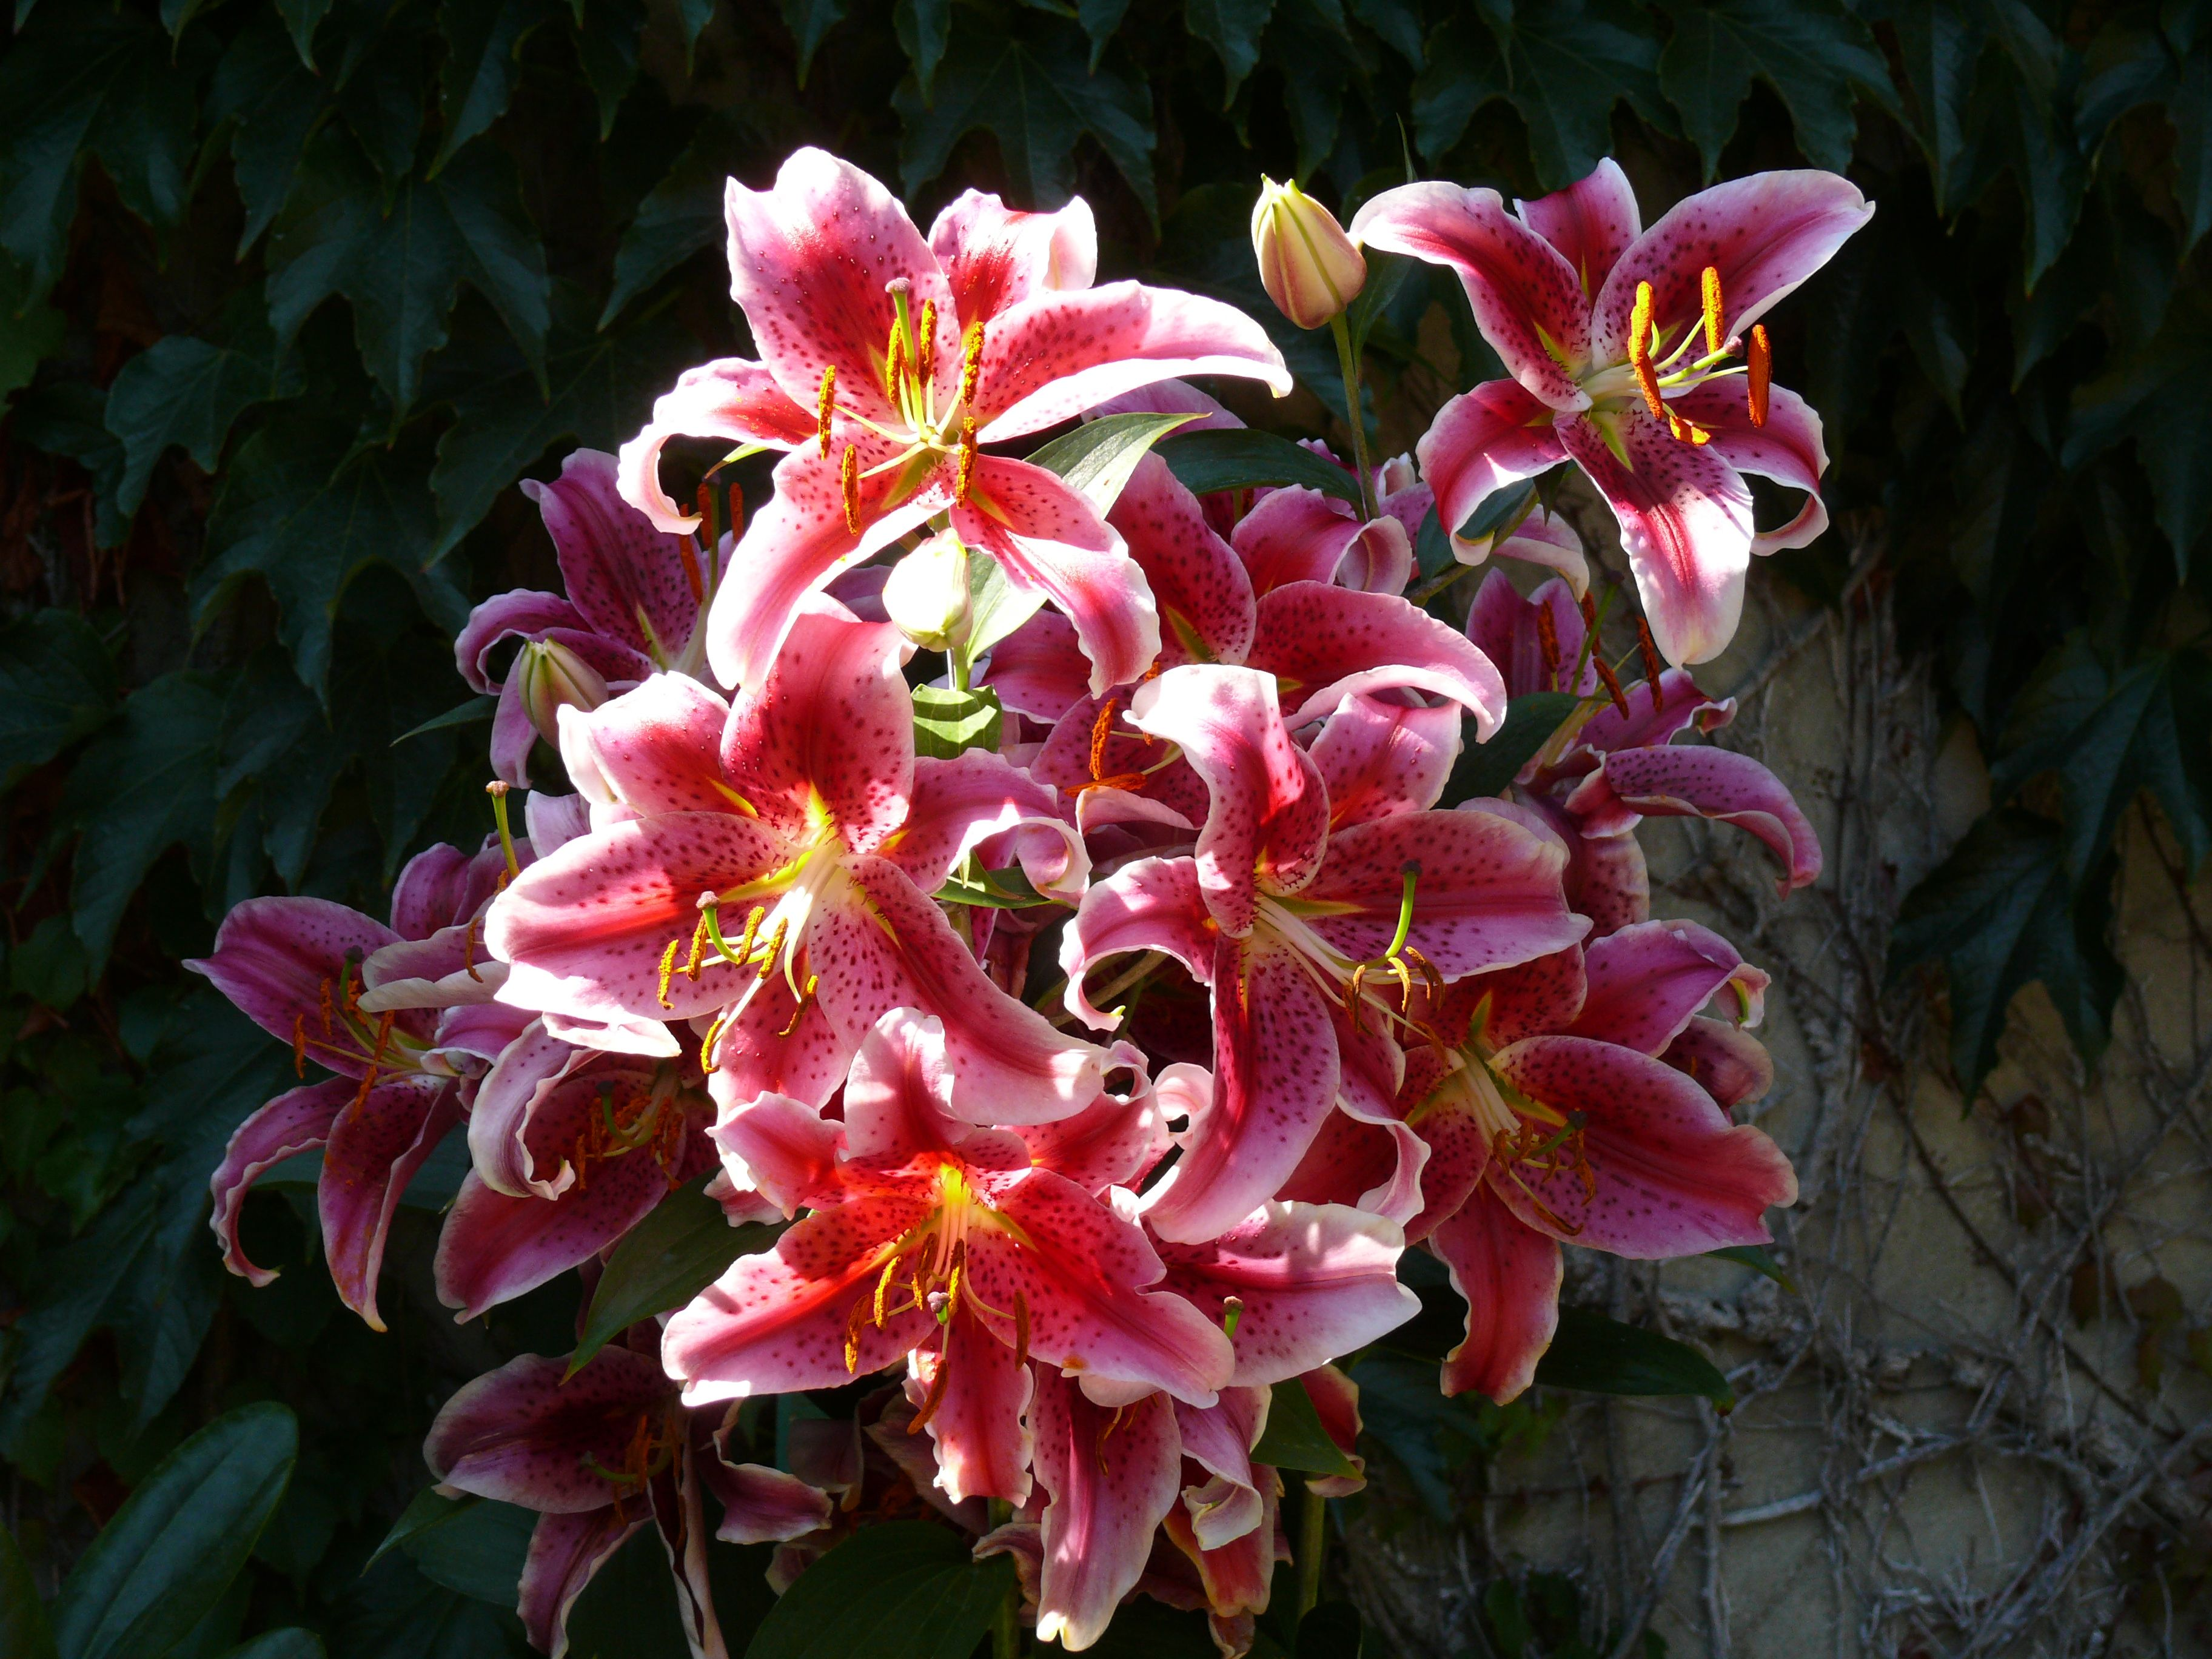 Stargazer lily unbeatable fragrance and stunning floral display